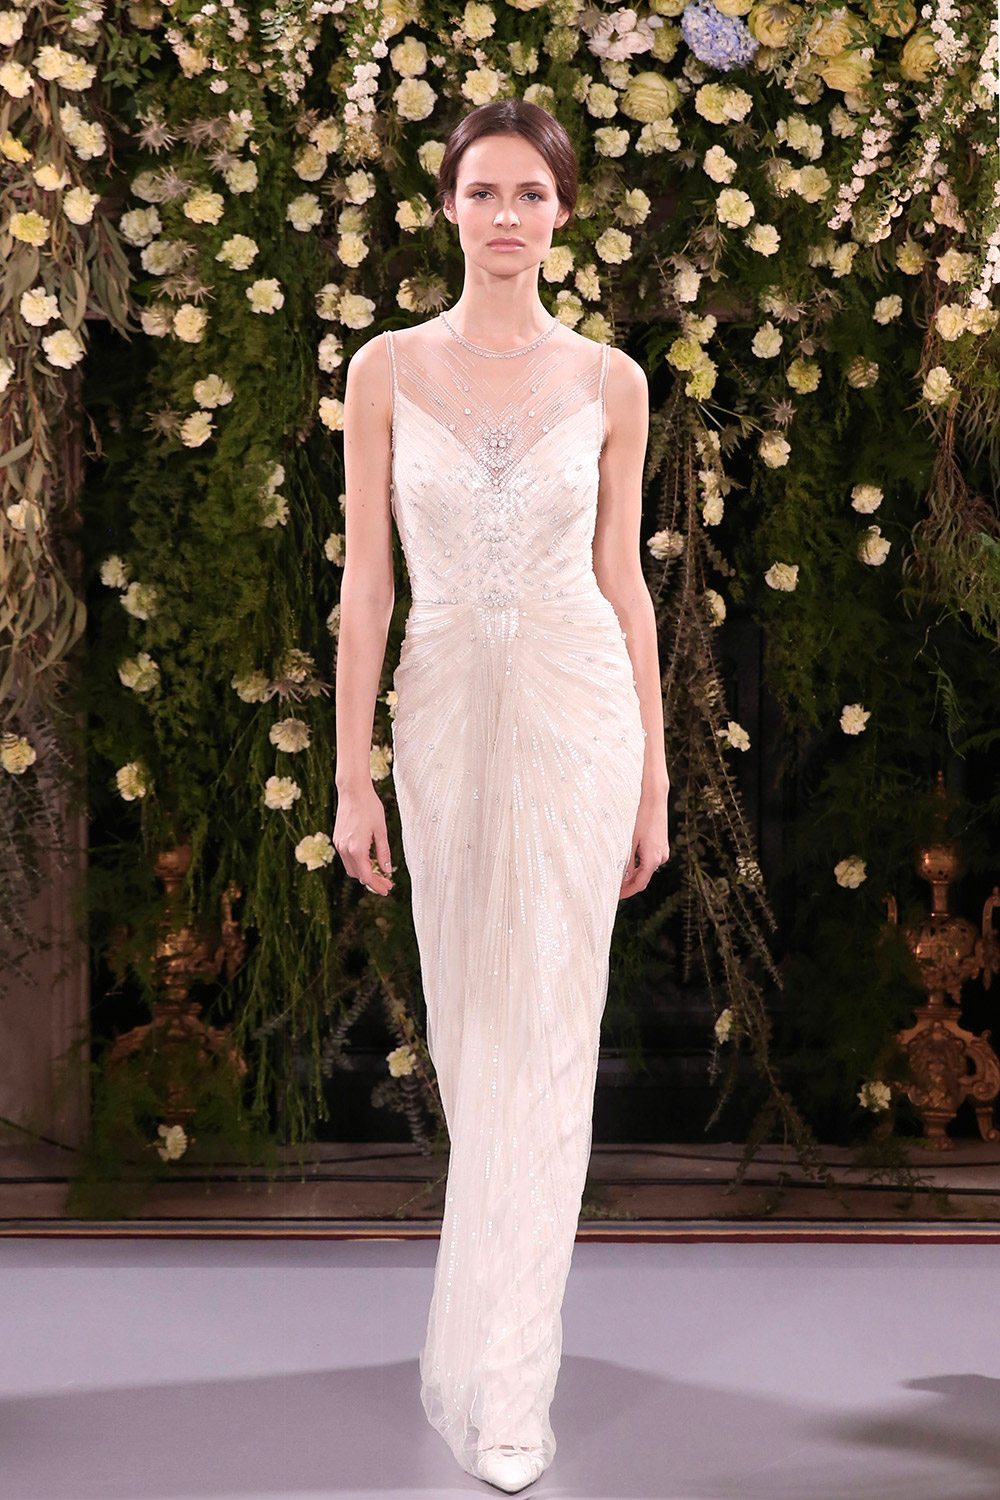 Millie – Jenny Packham 2019 Bridal Collection. www.theweddingnotebook.com